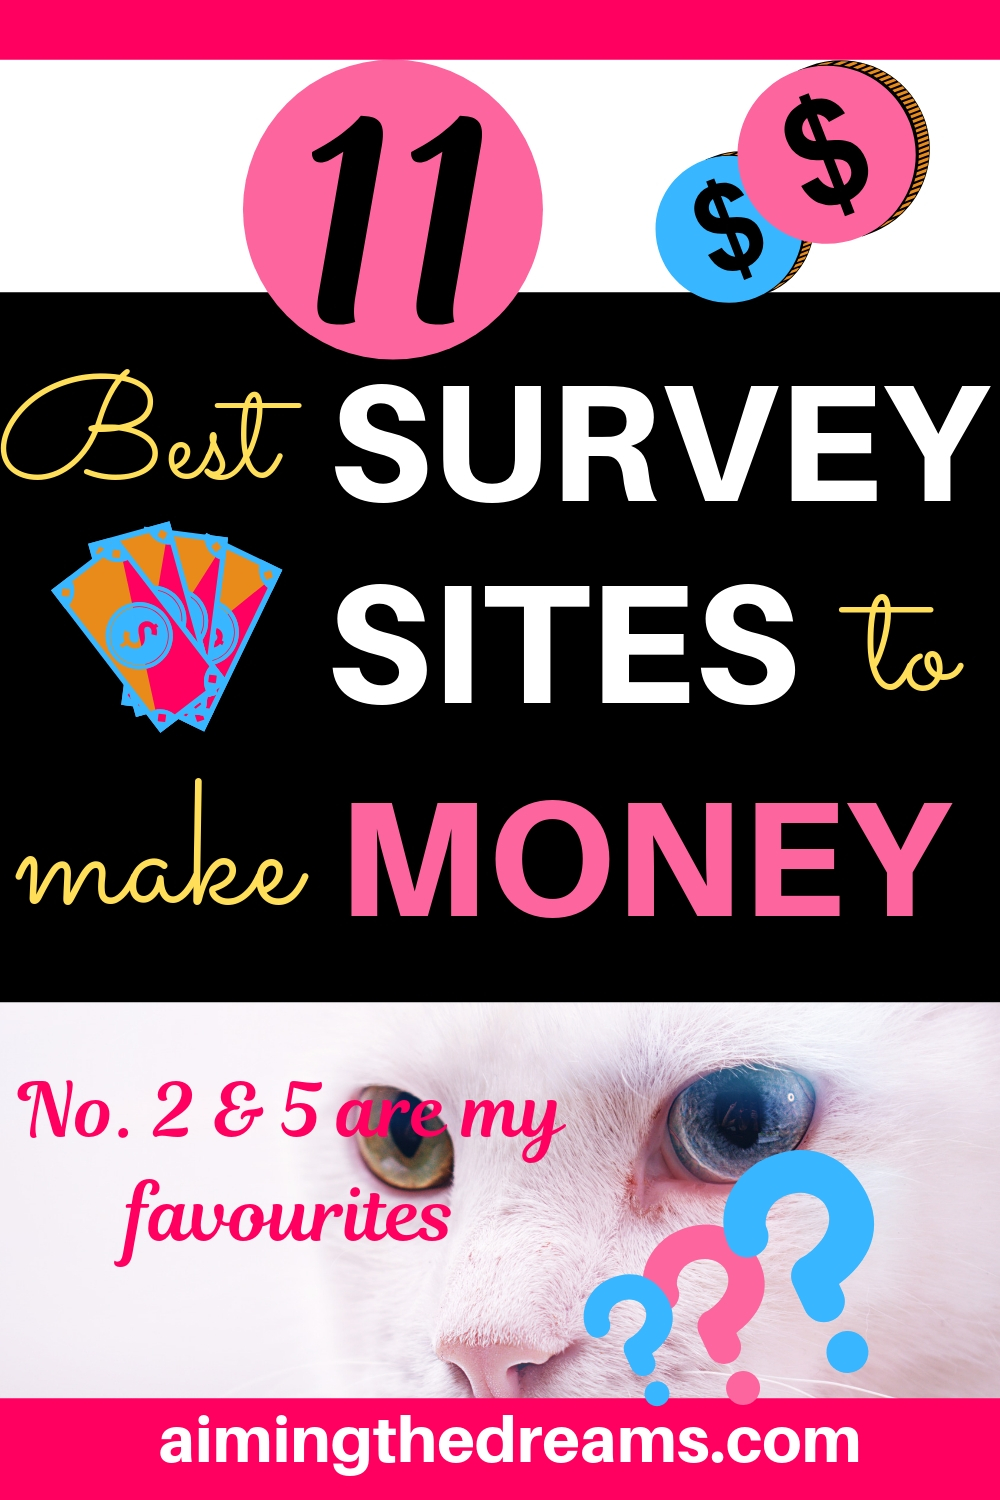 11 best survey sites to make money and earn income online as side hustle.